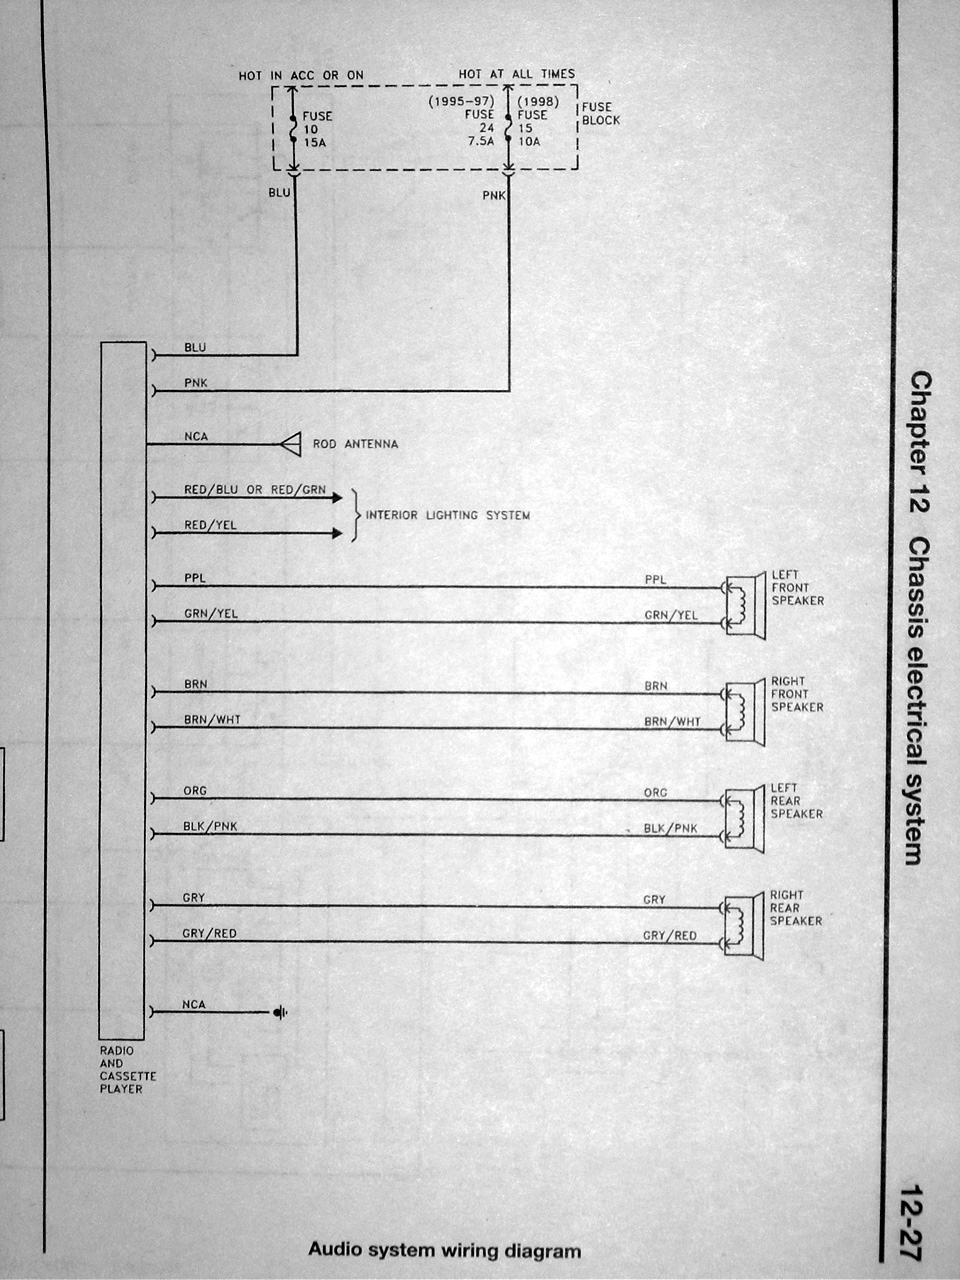 DSC01849 wiring diagram thread *useful info* nissan forum Nissan Xterra Wiring Harness Diagram at crackthecode.co